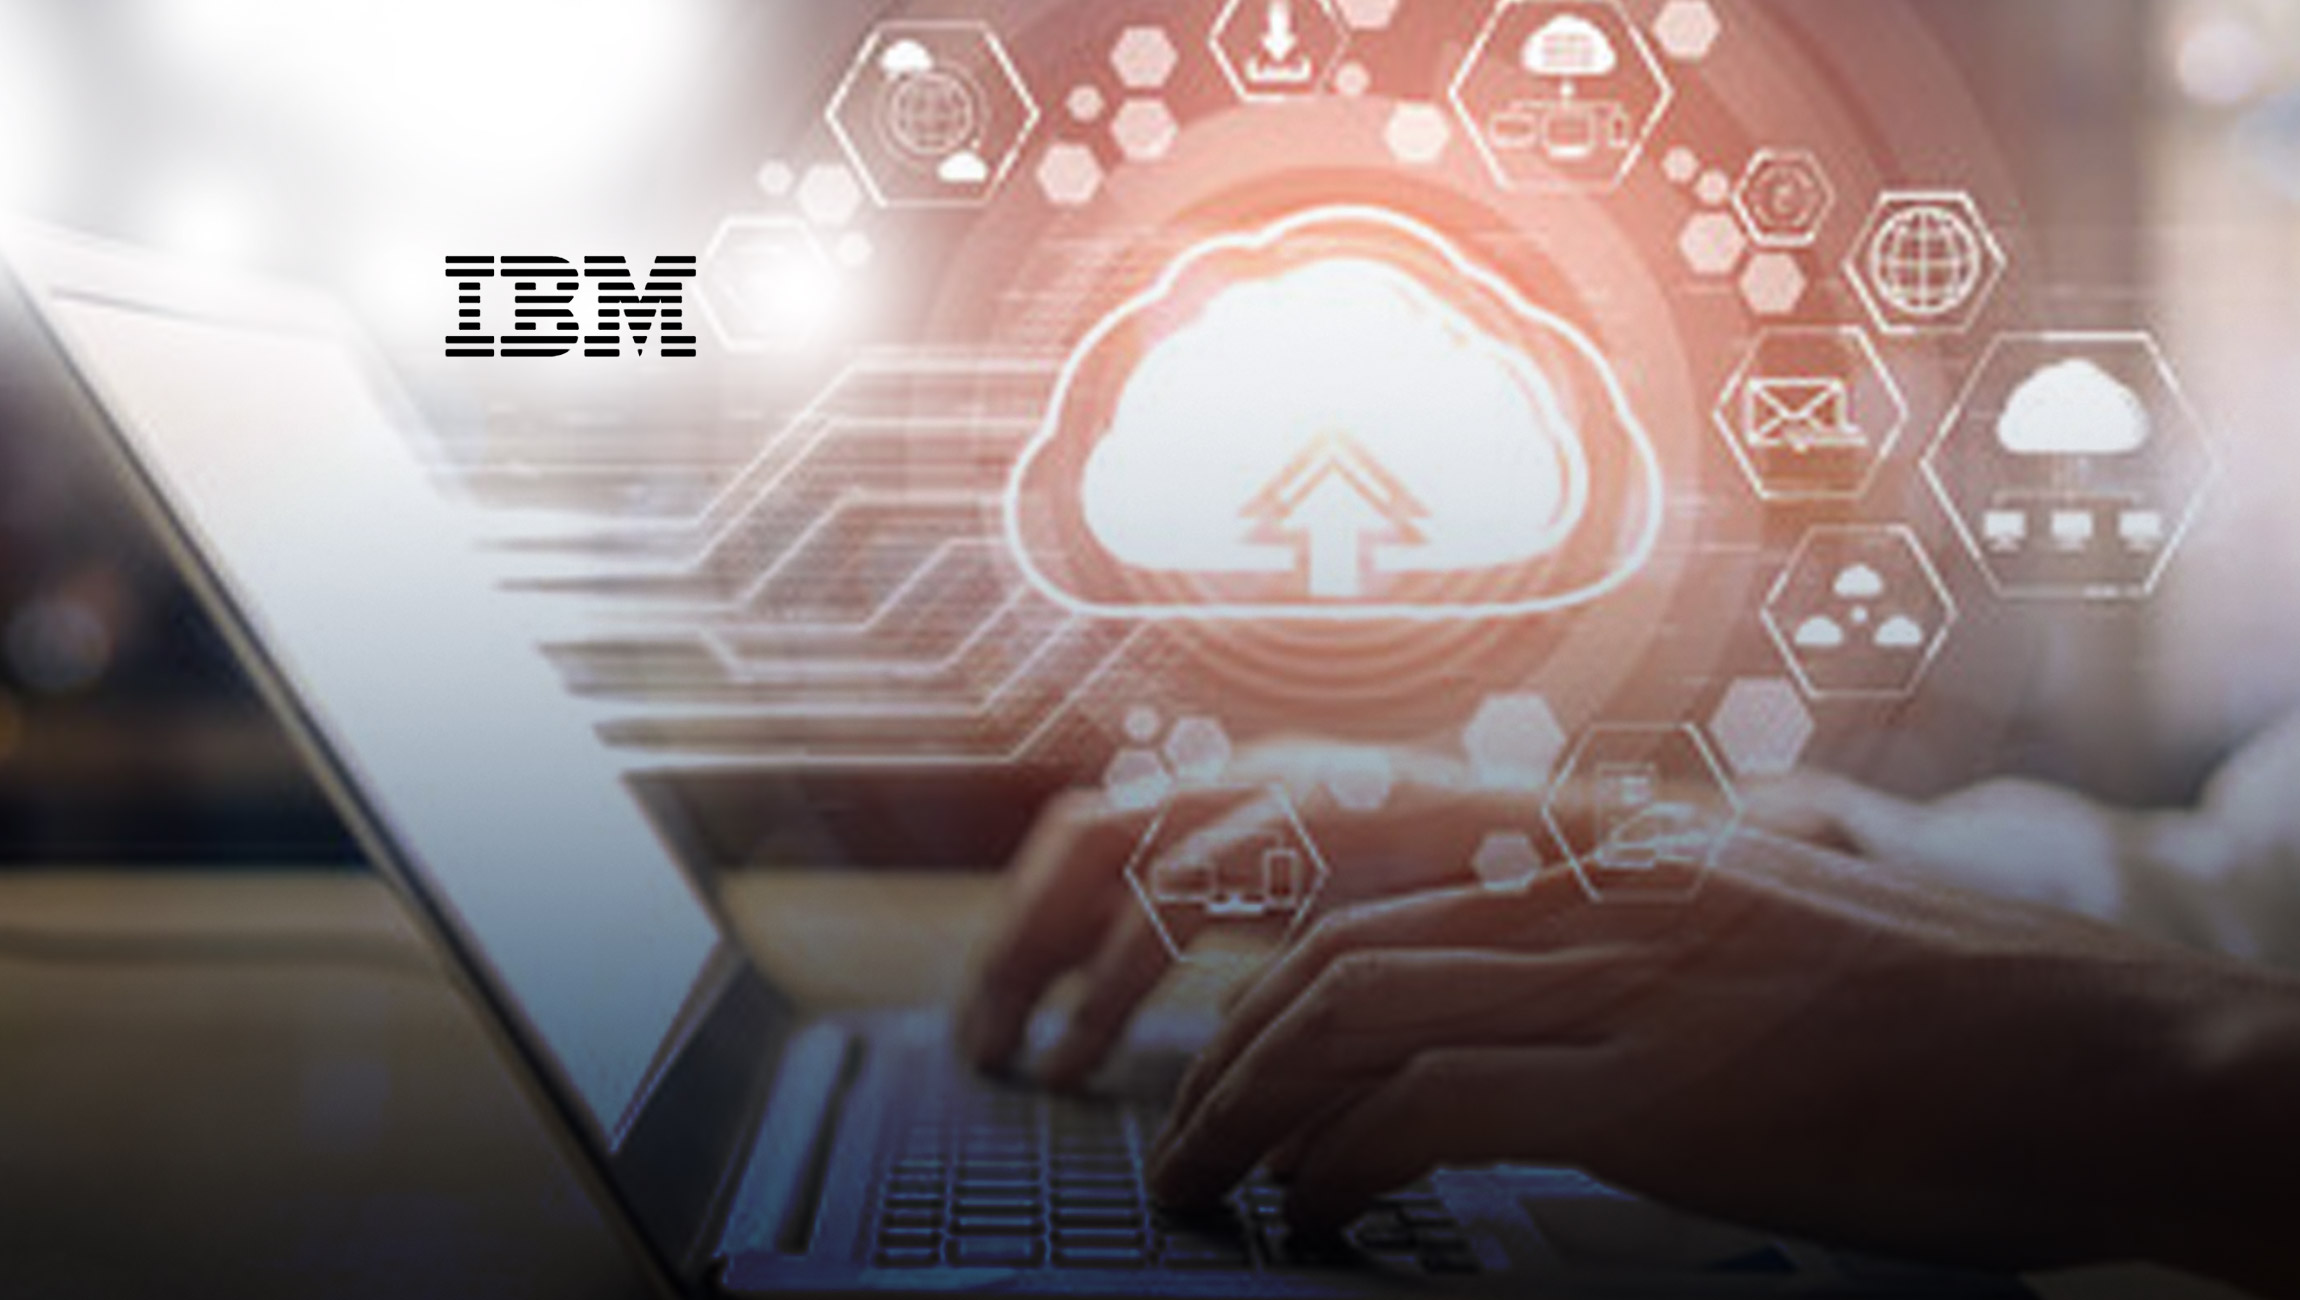 IBM Collaborates with AWS on Security for Hybrid Cloud